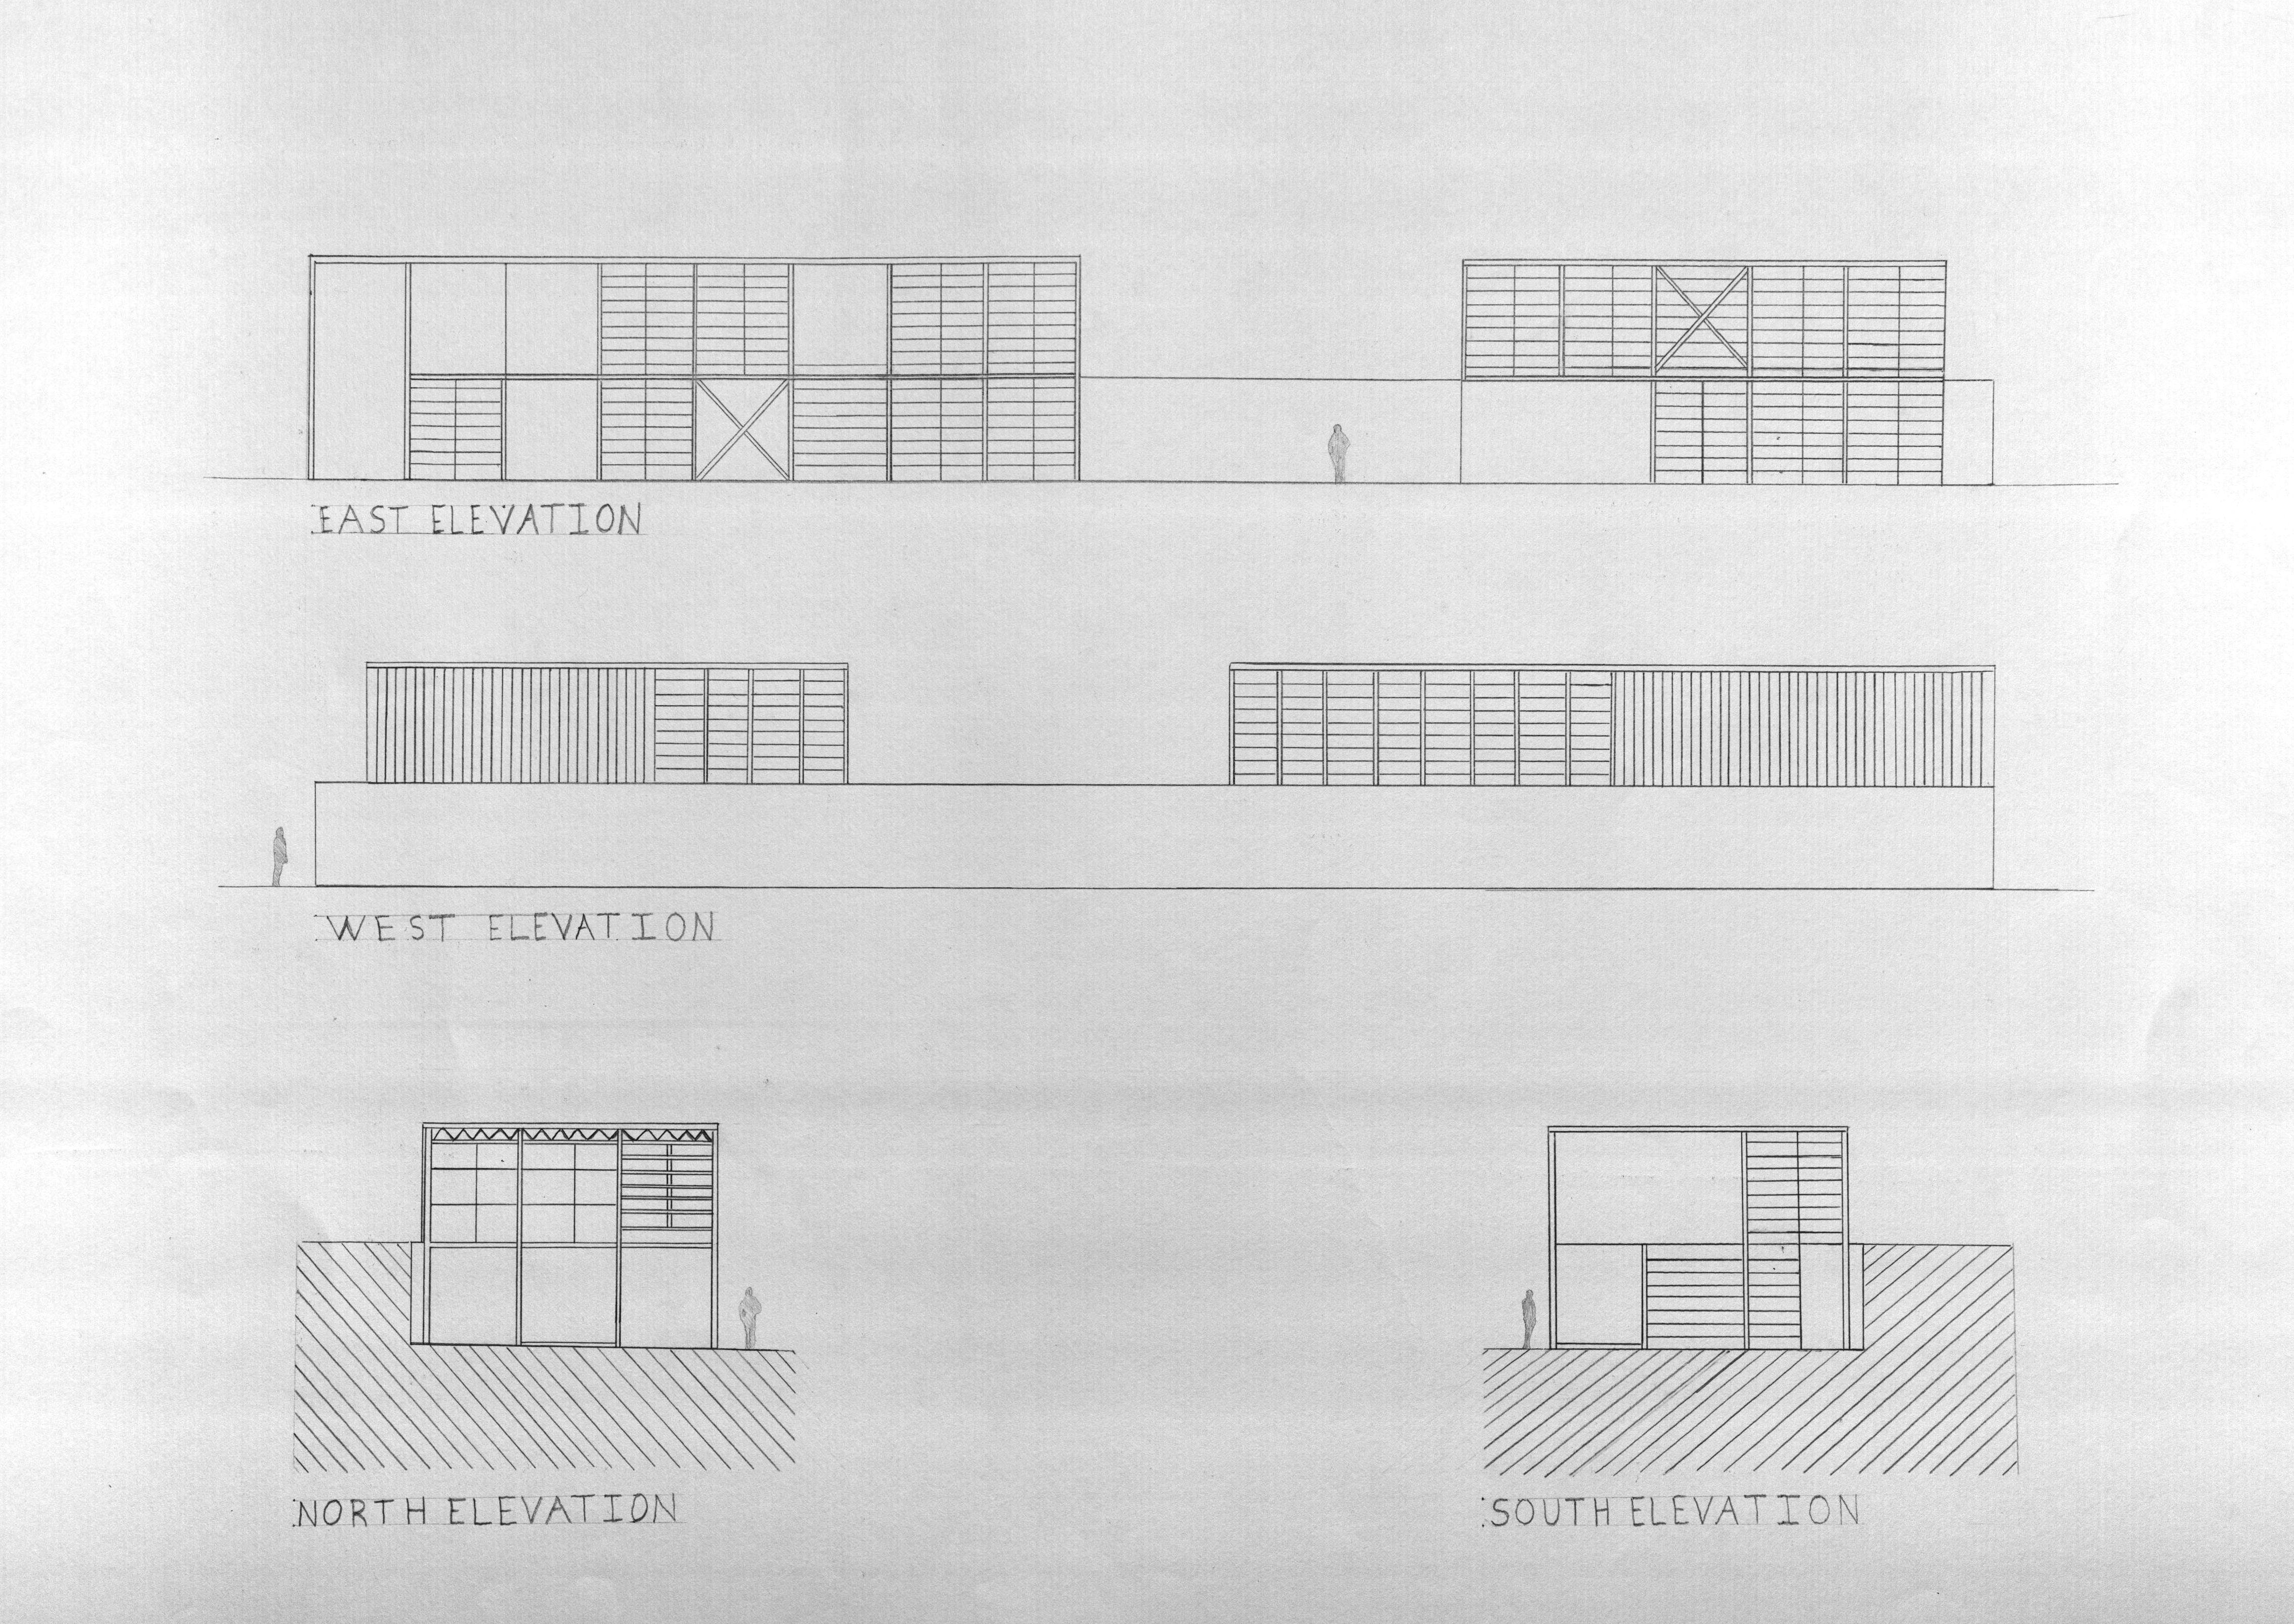 Eames House art design architecture drawing sketch